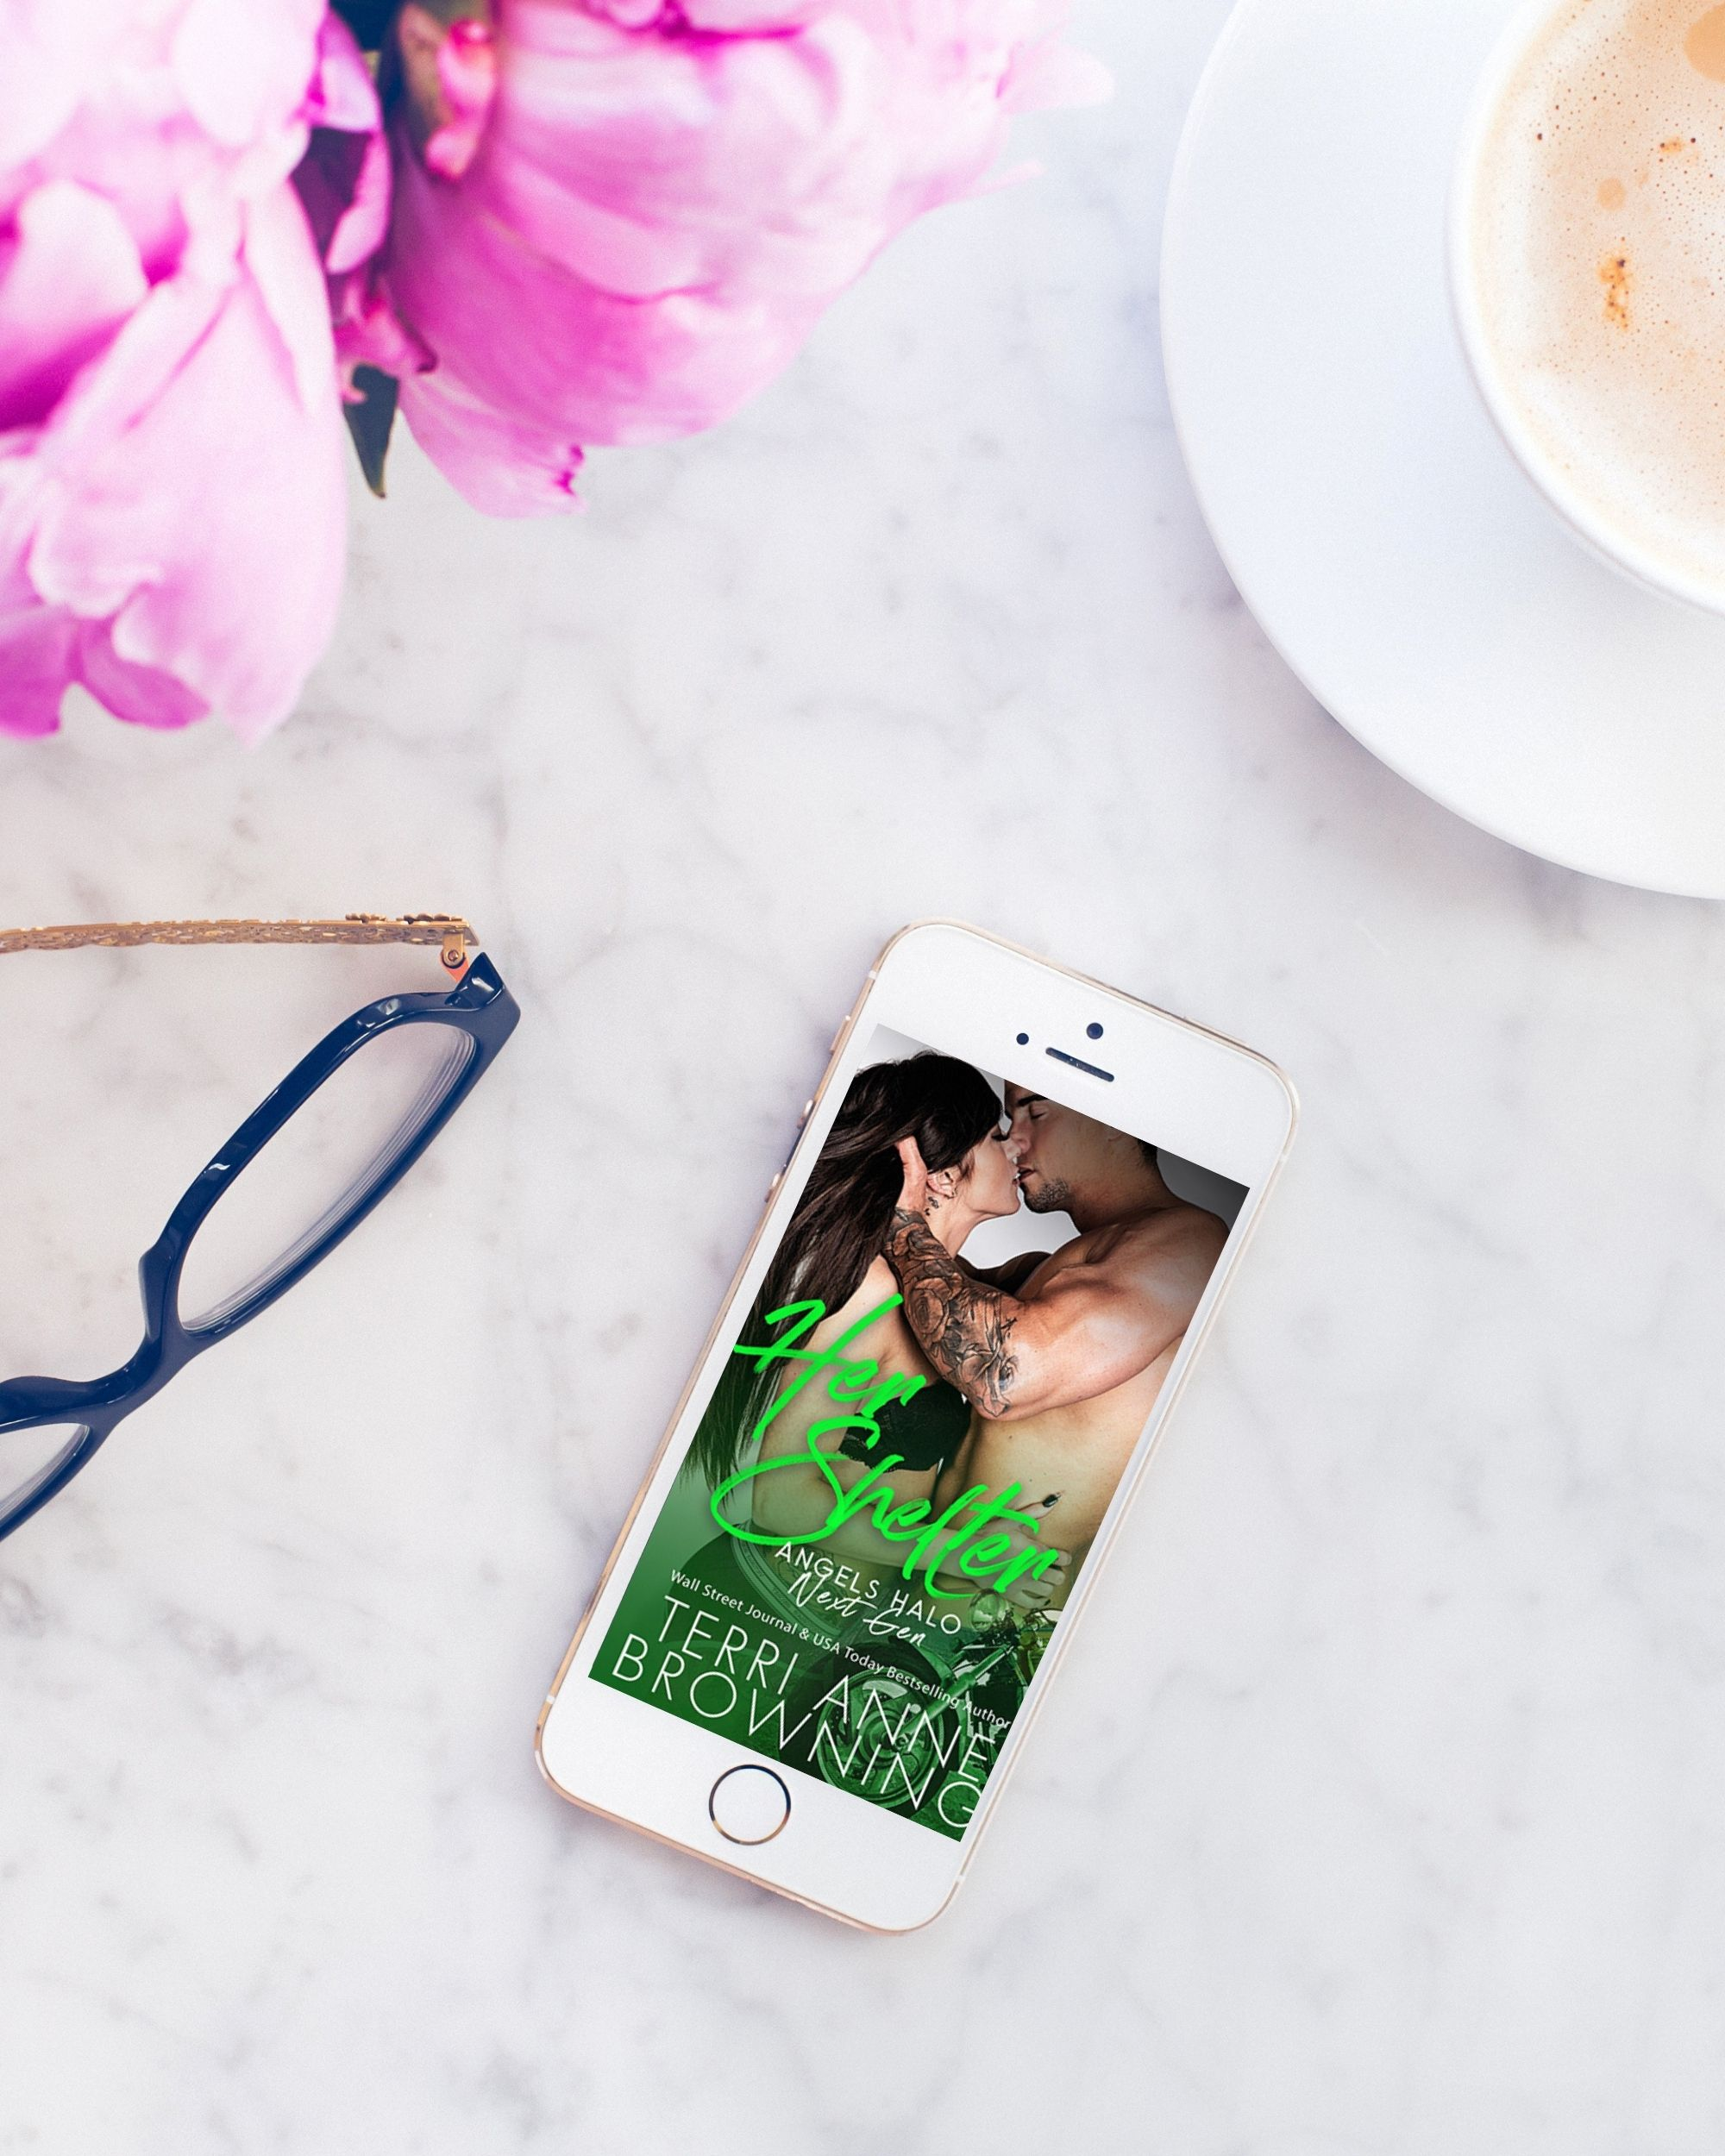 Her Shelter by Terri Anne Browning | Book Review